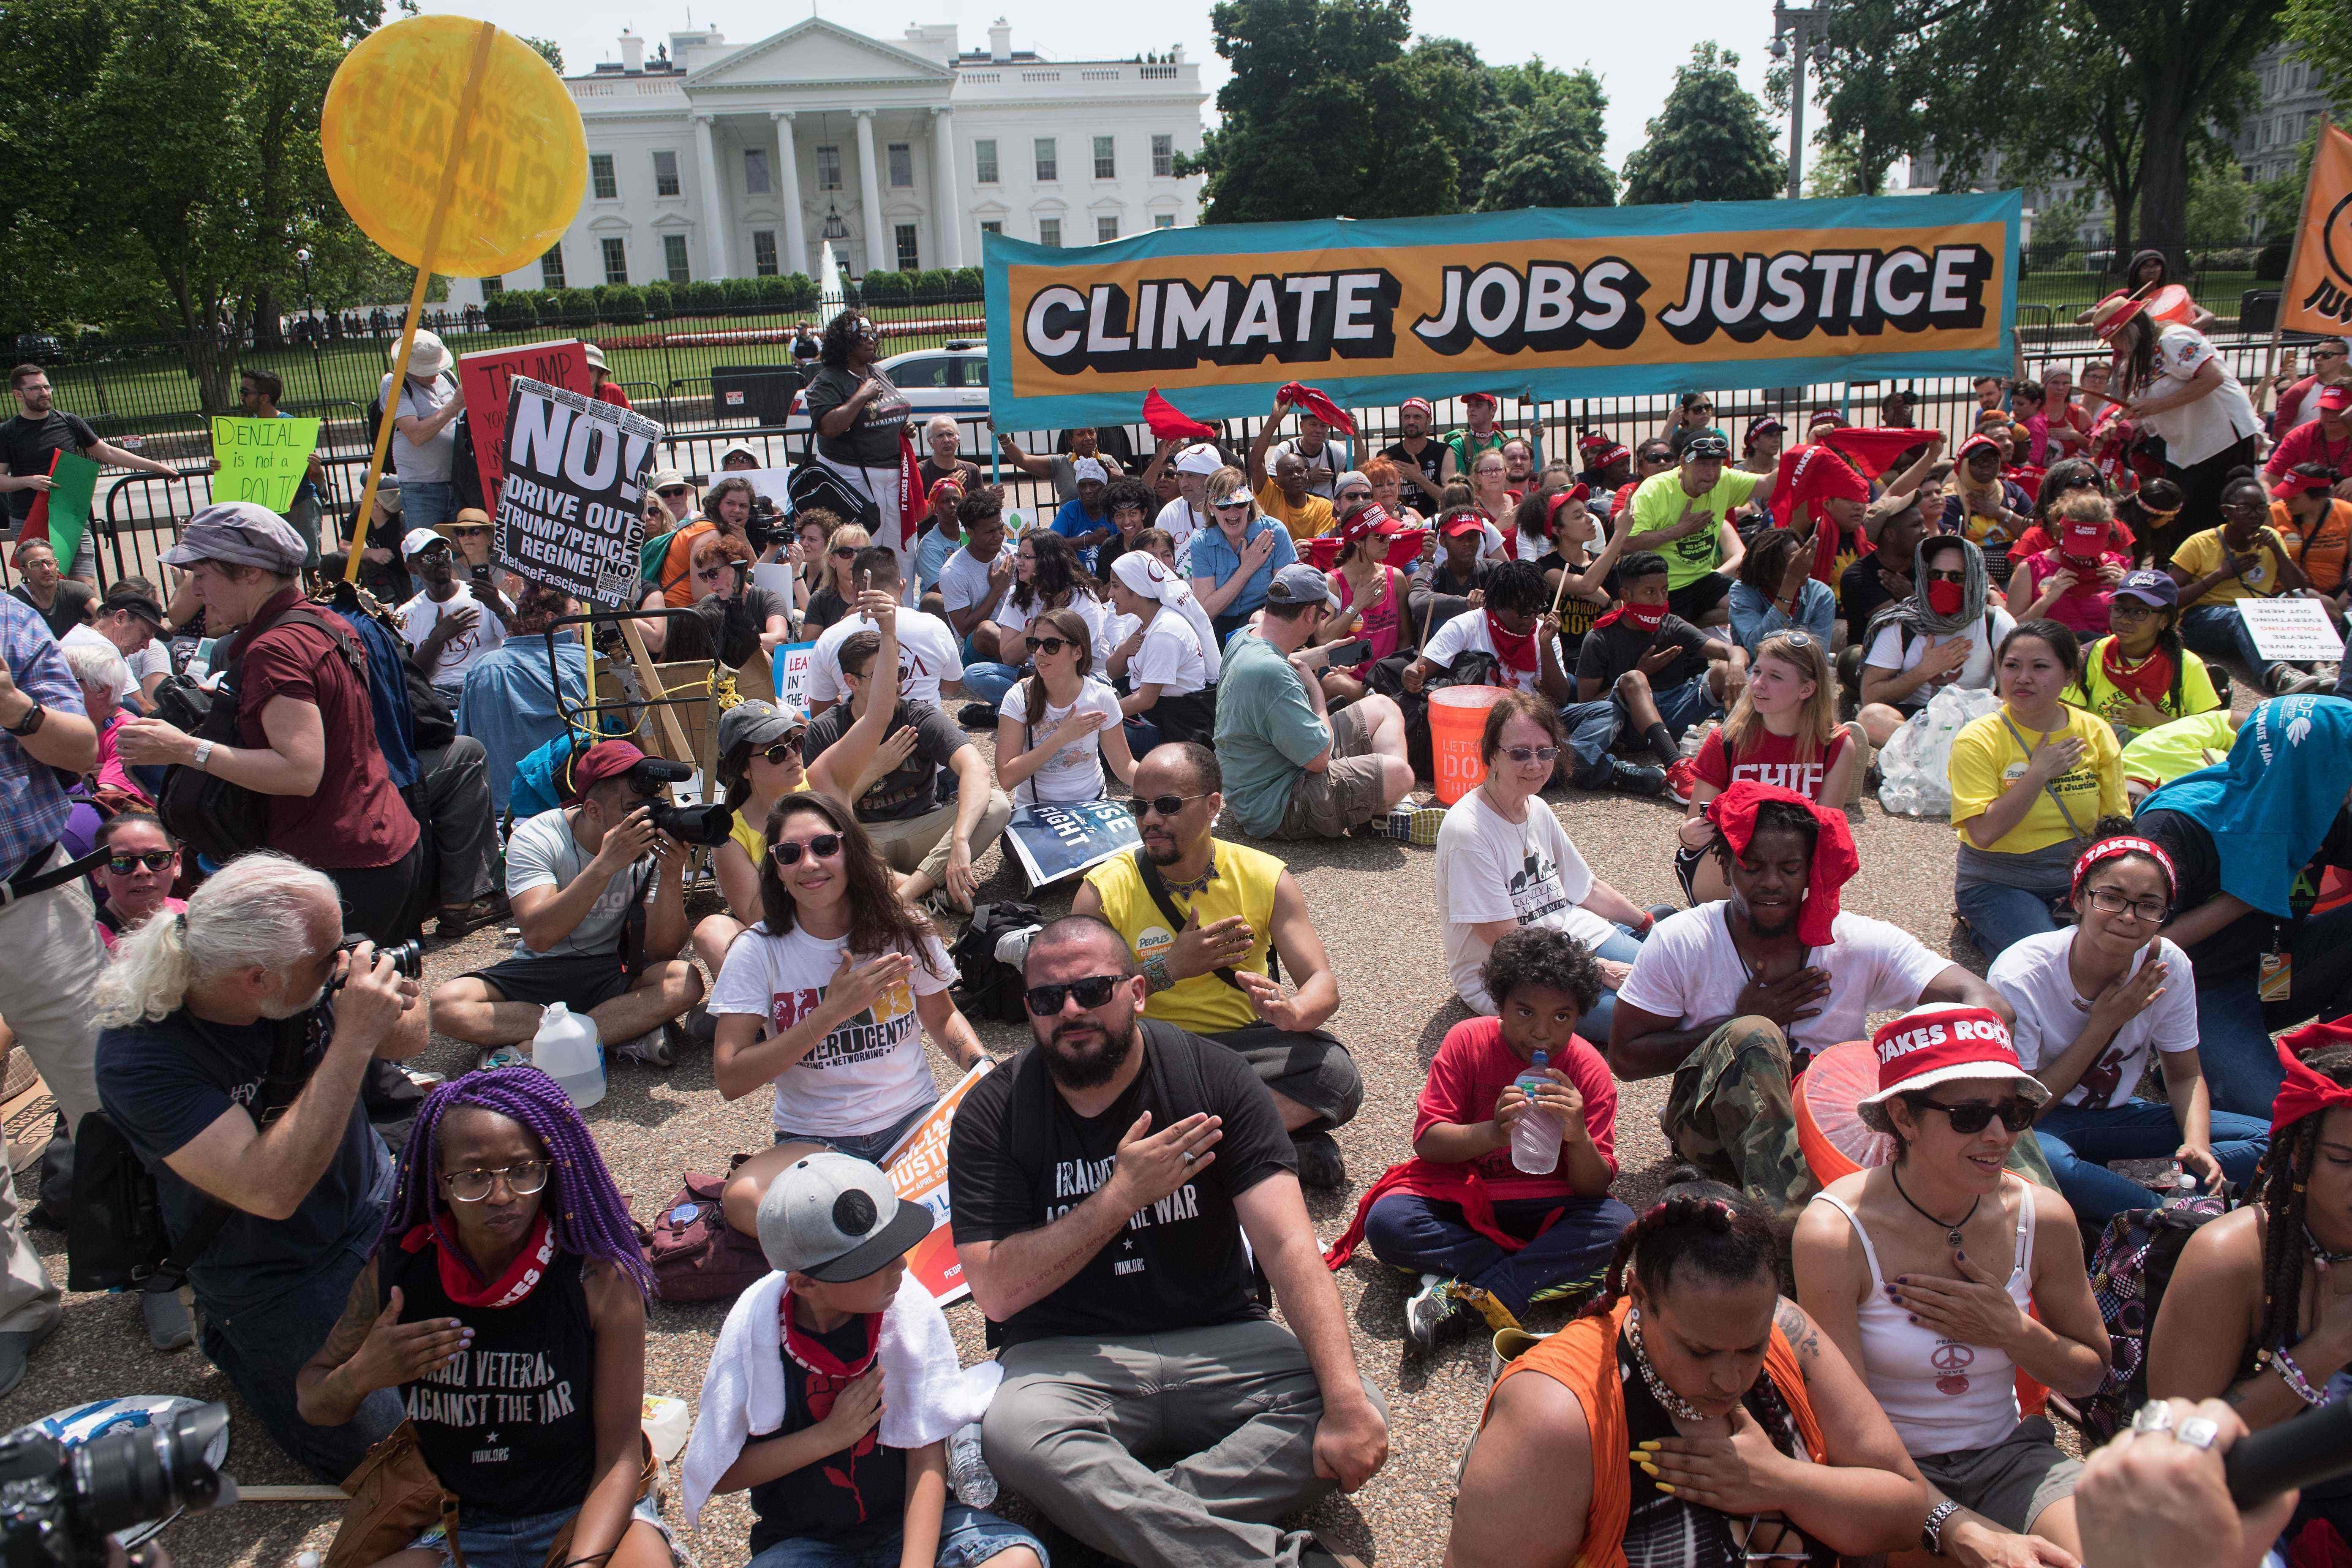 636290745364165822-climate-march EPA removes climate change data, other scientific information from website